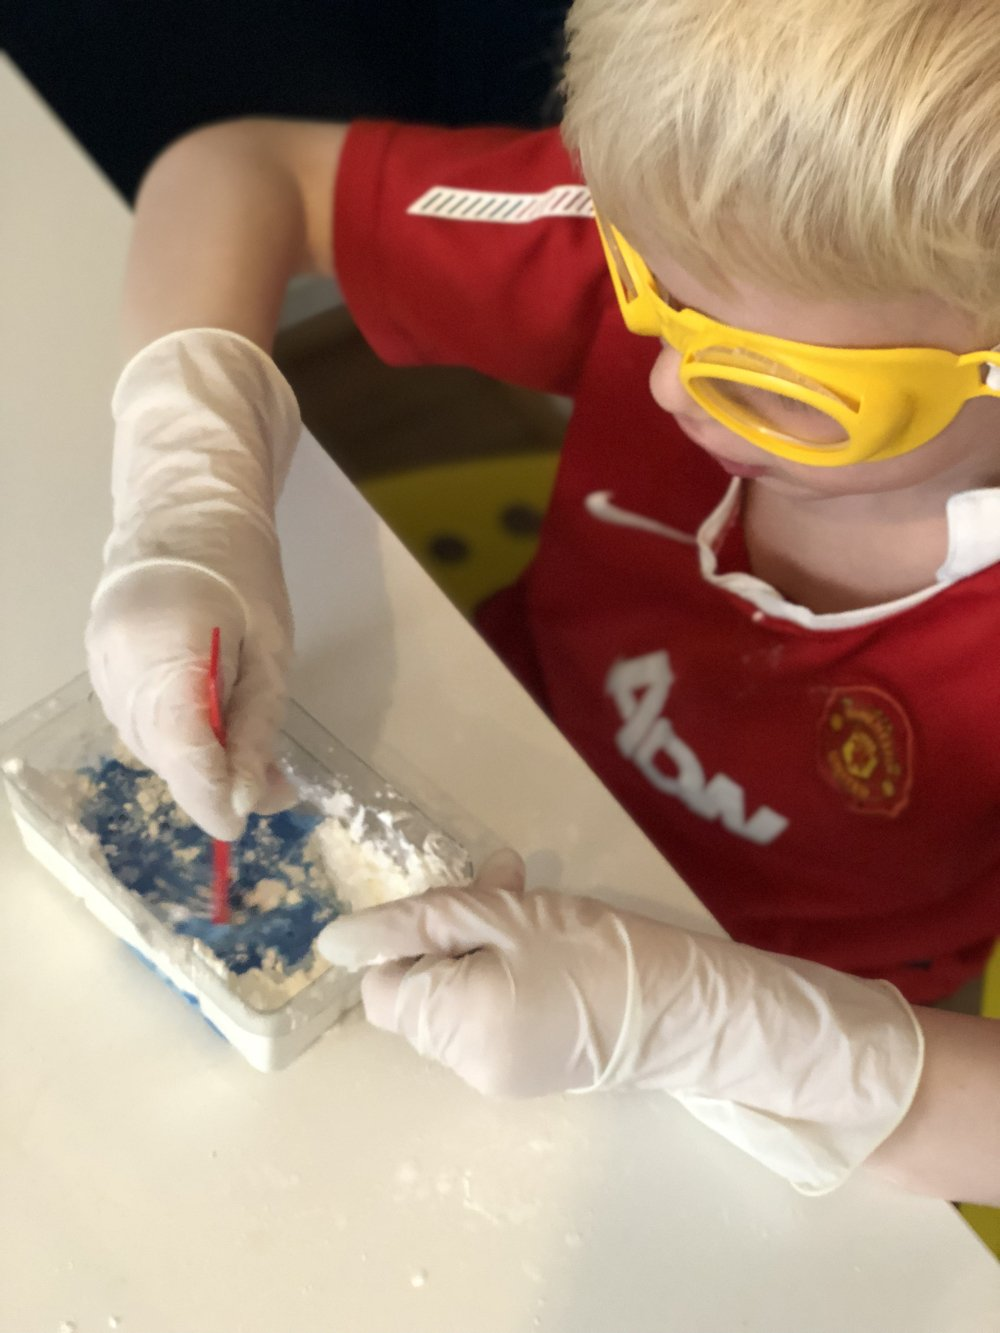 boy making blue plasticine with the Slimy Laboratory kit